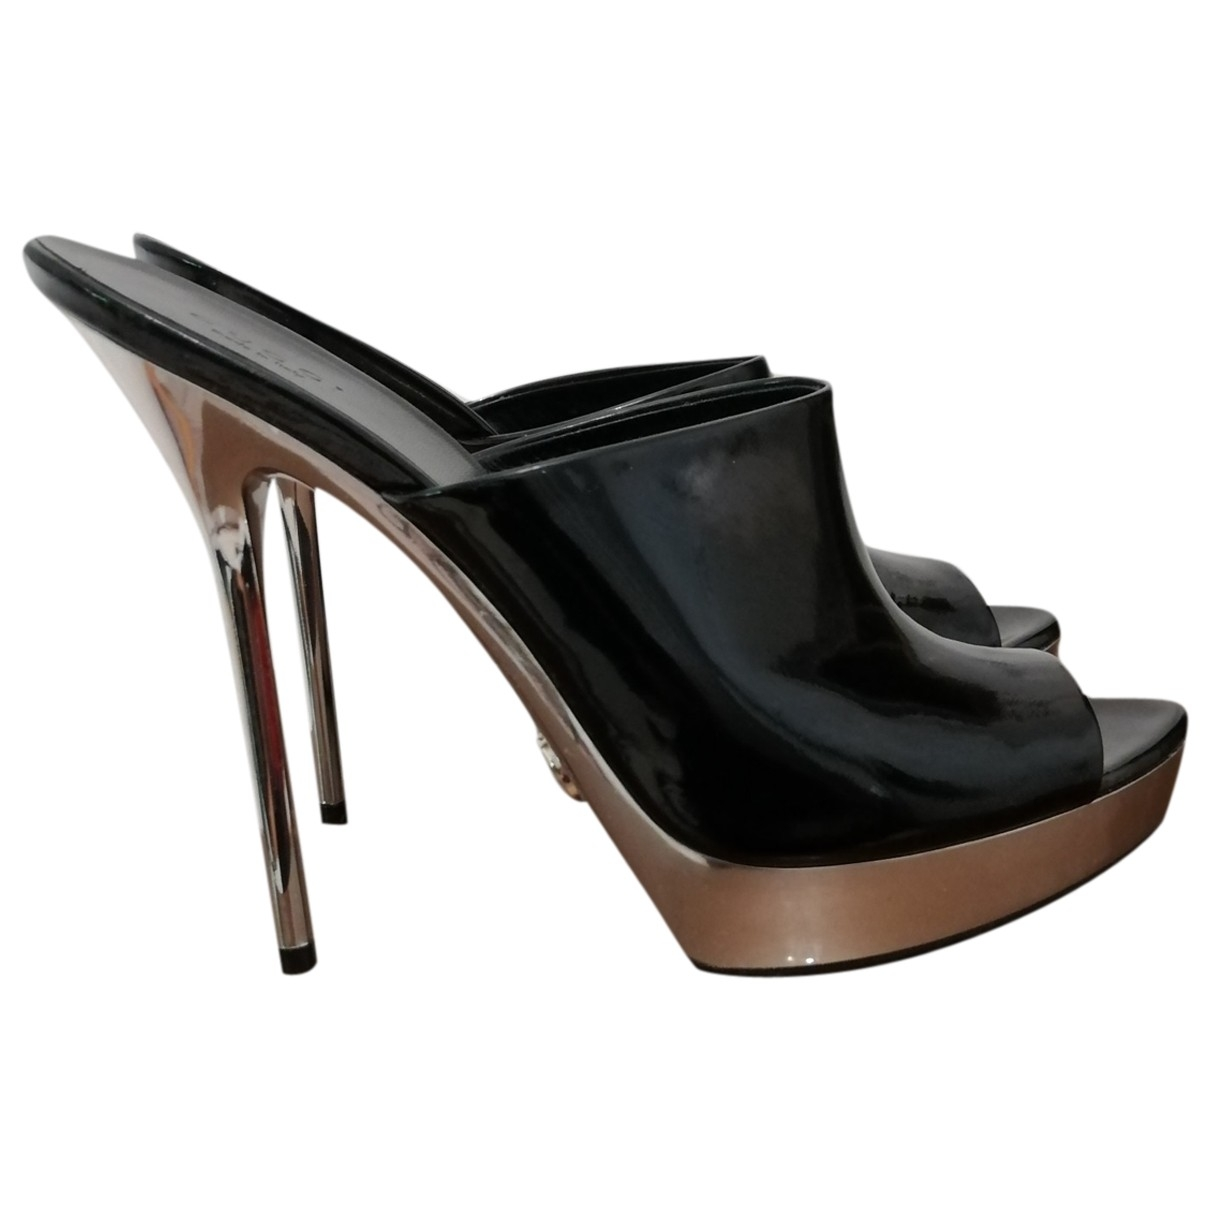 Gucci \N Black Patent leather Sandals for Women 38.5 EU